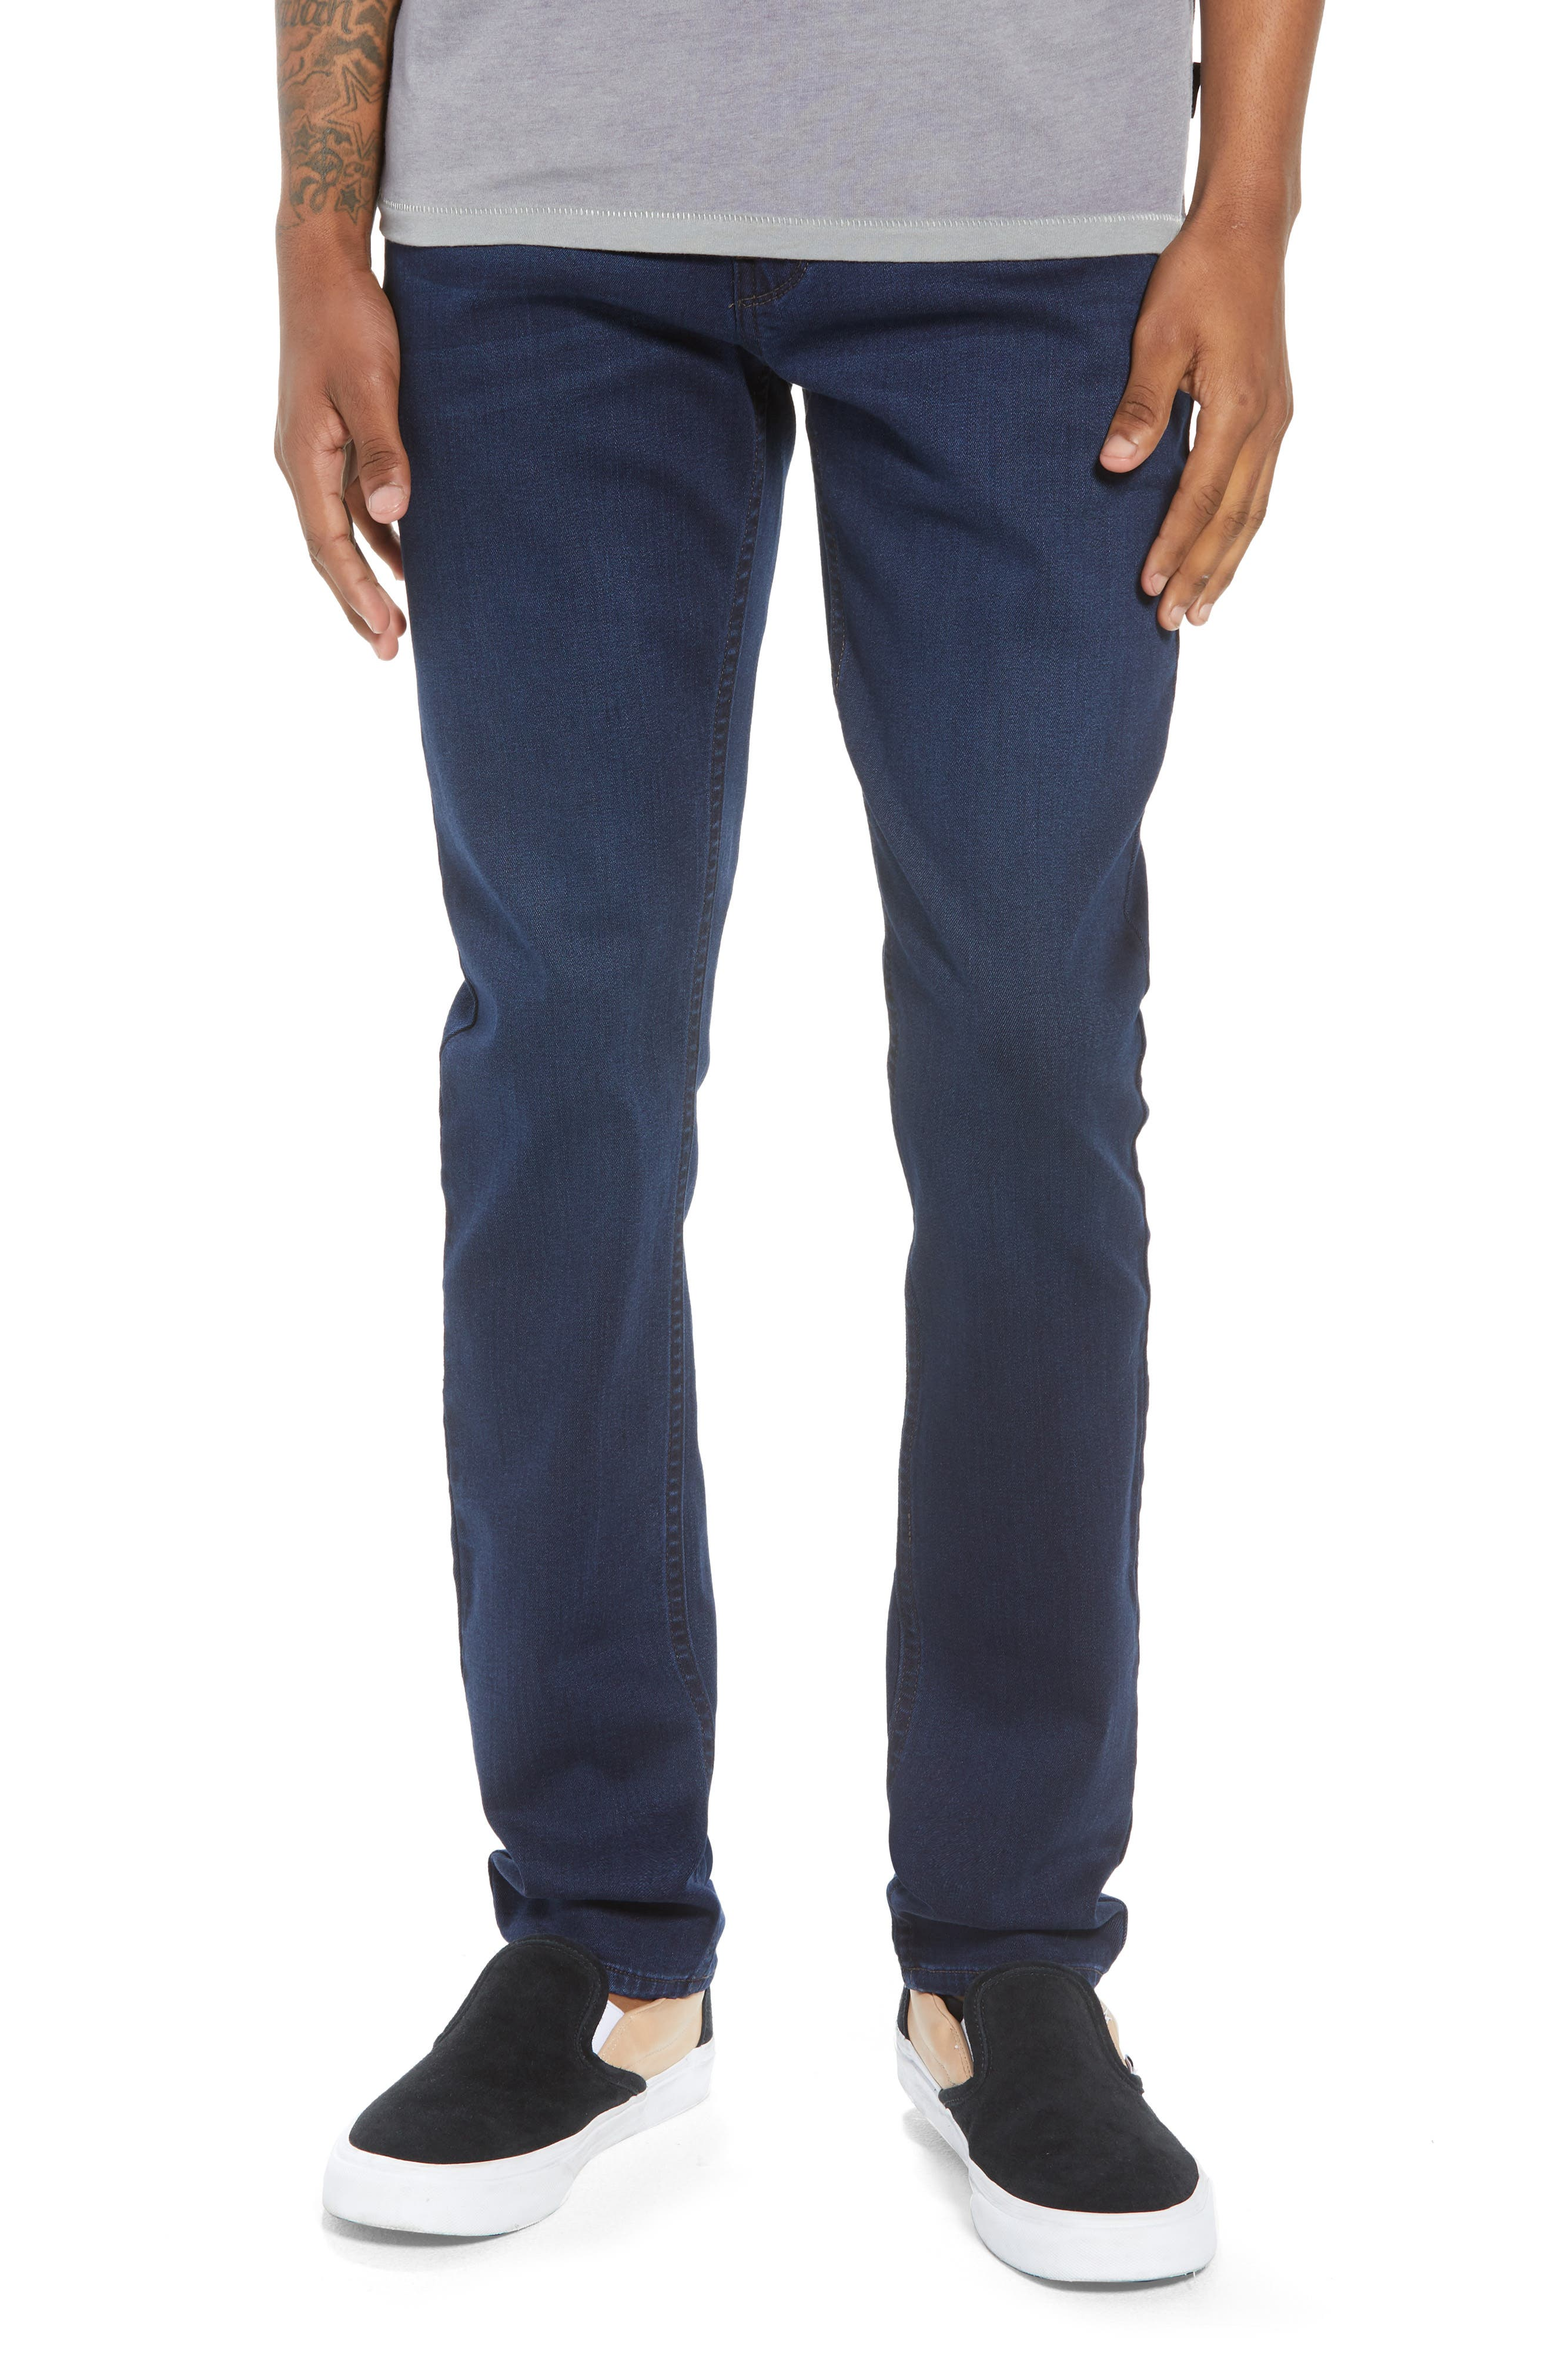 Transcend - Croft Skinny Fit Jeans,                             Main thumbnail 1, color,                             HAYWORD